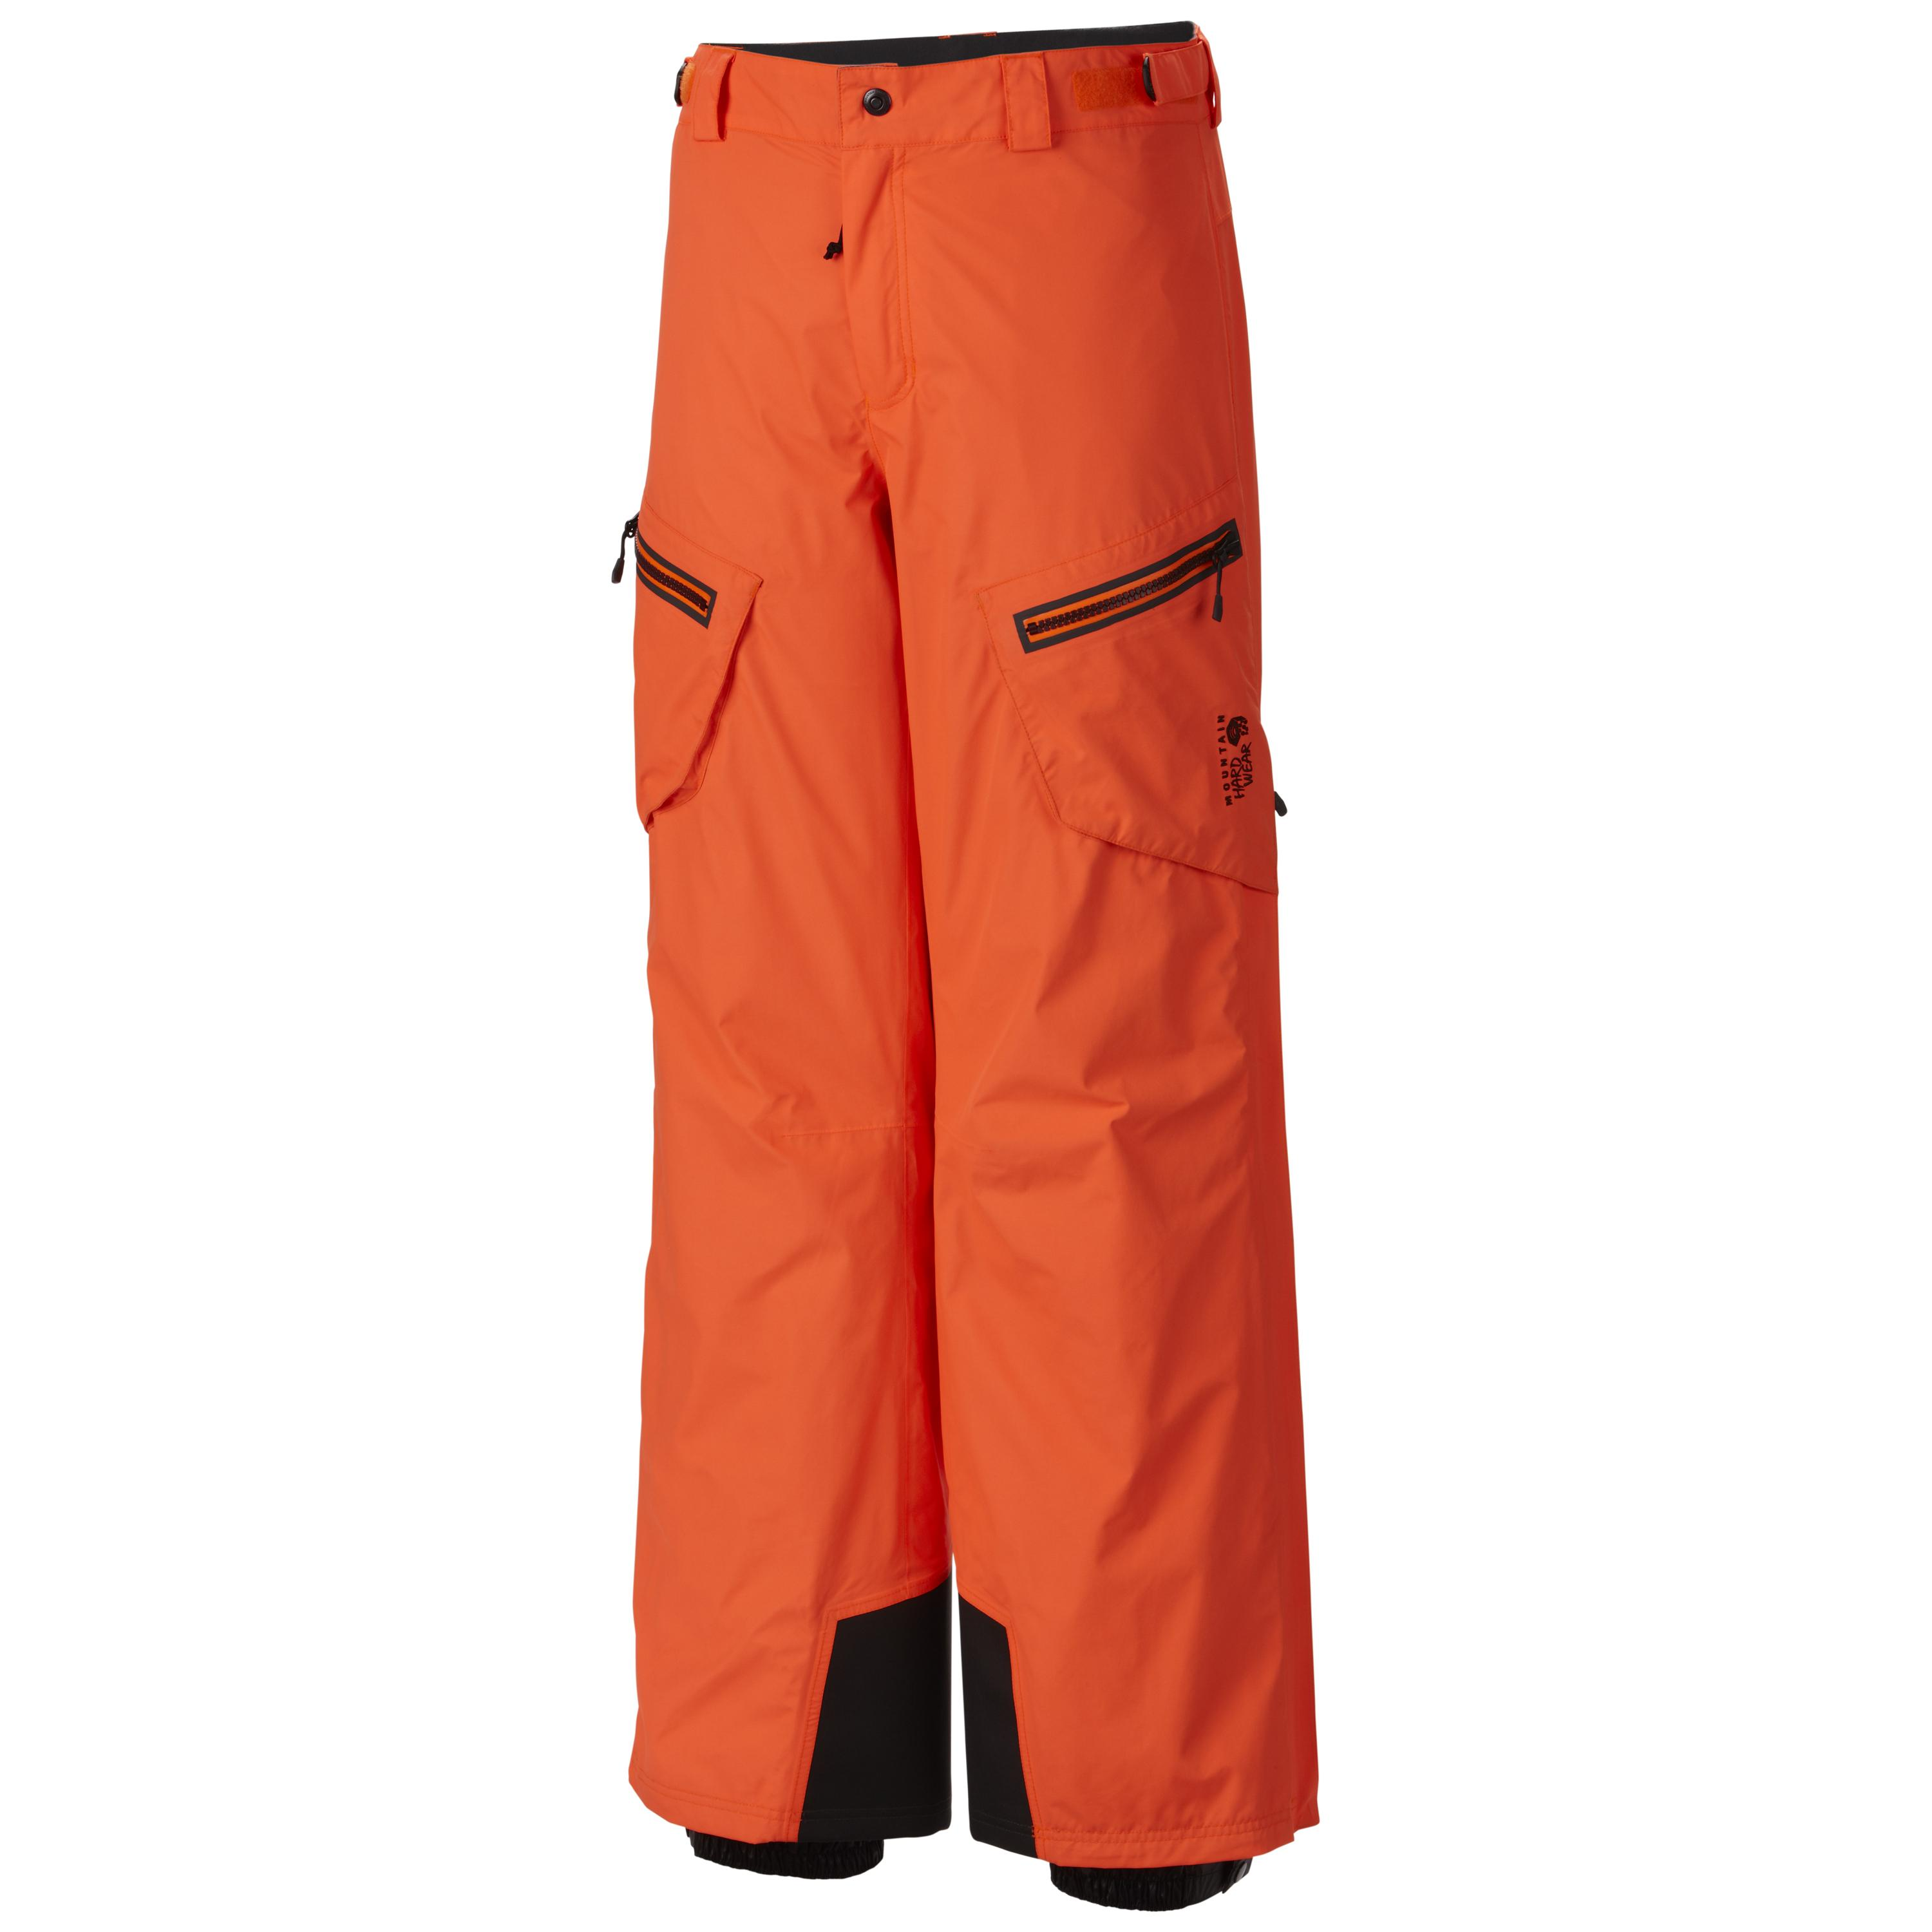 Mountain hard wear Compulsion 2l Pant